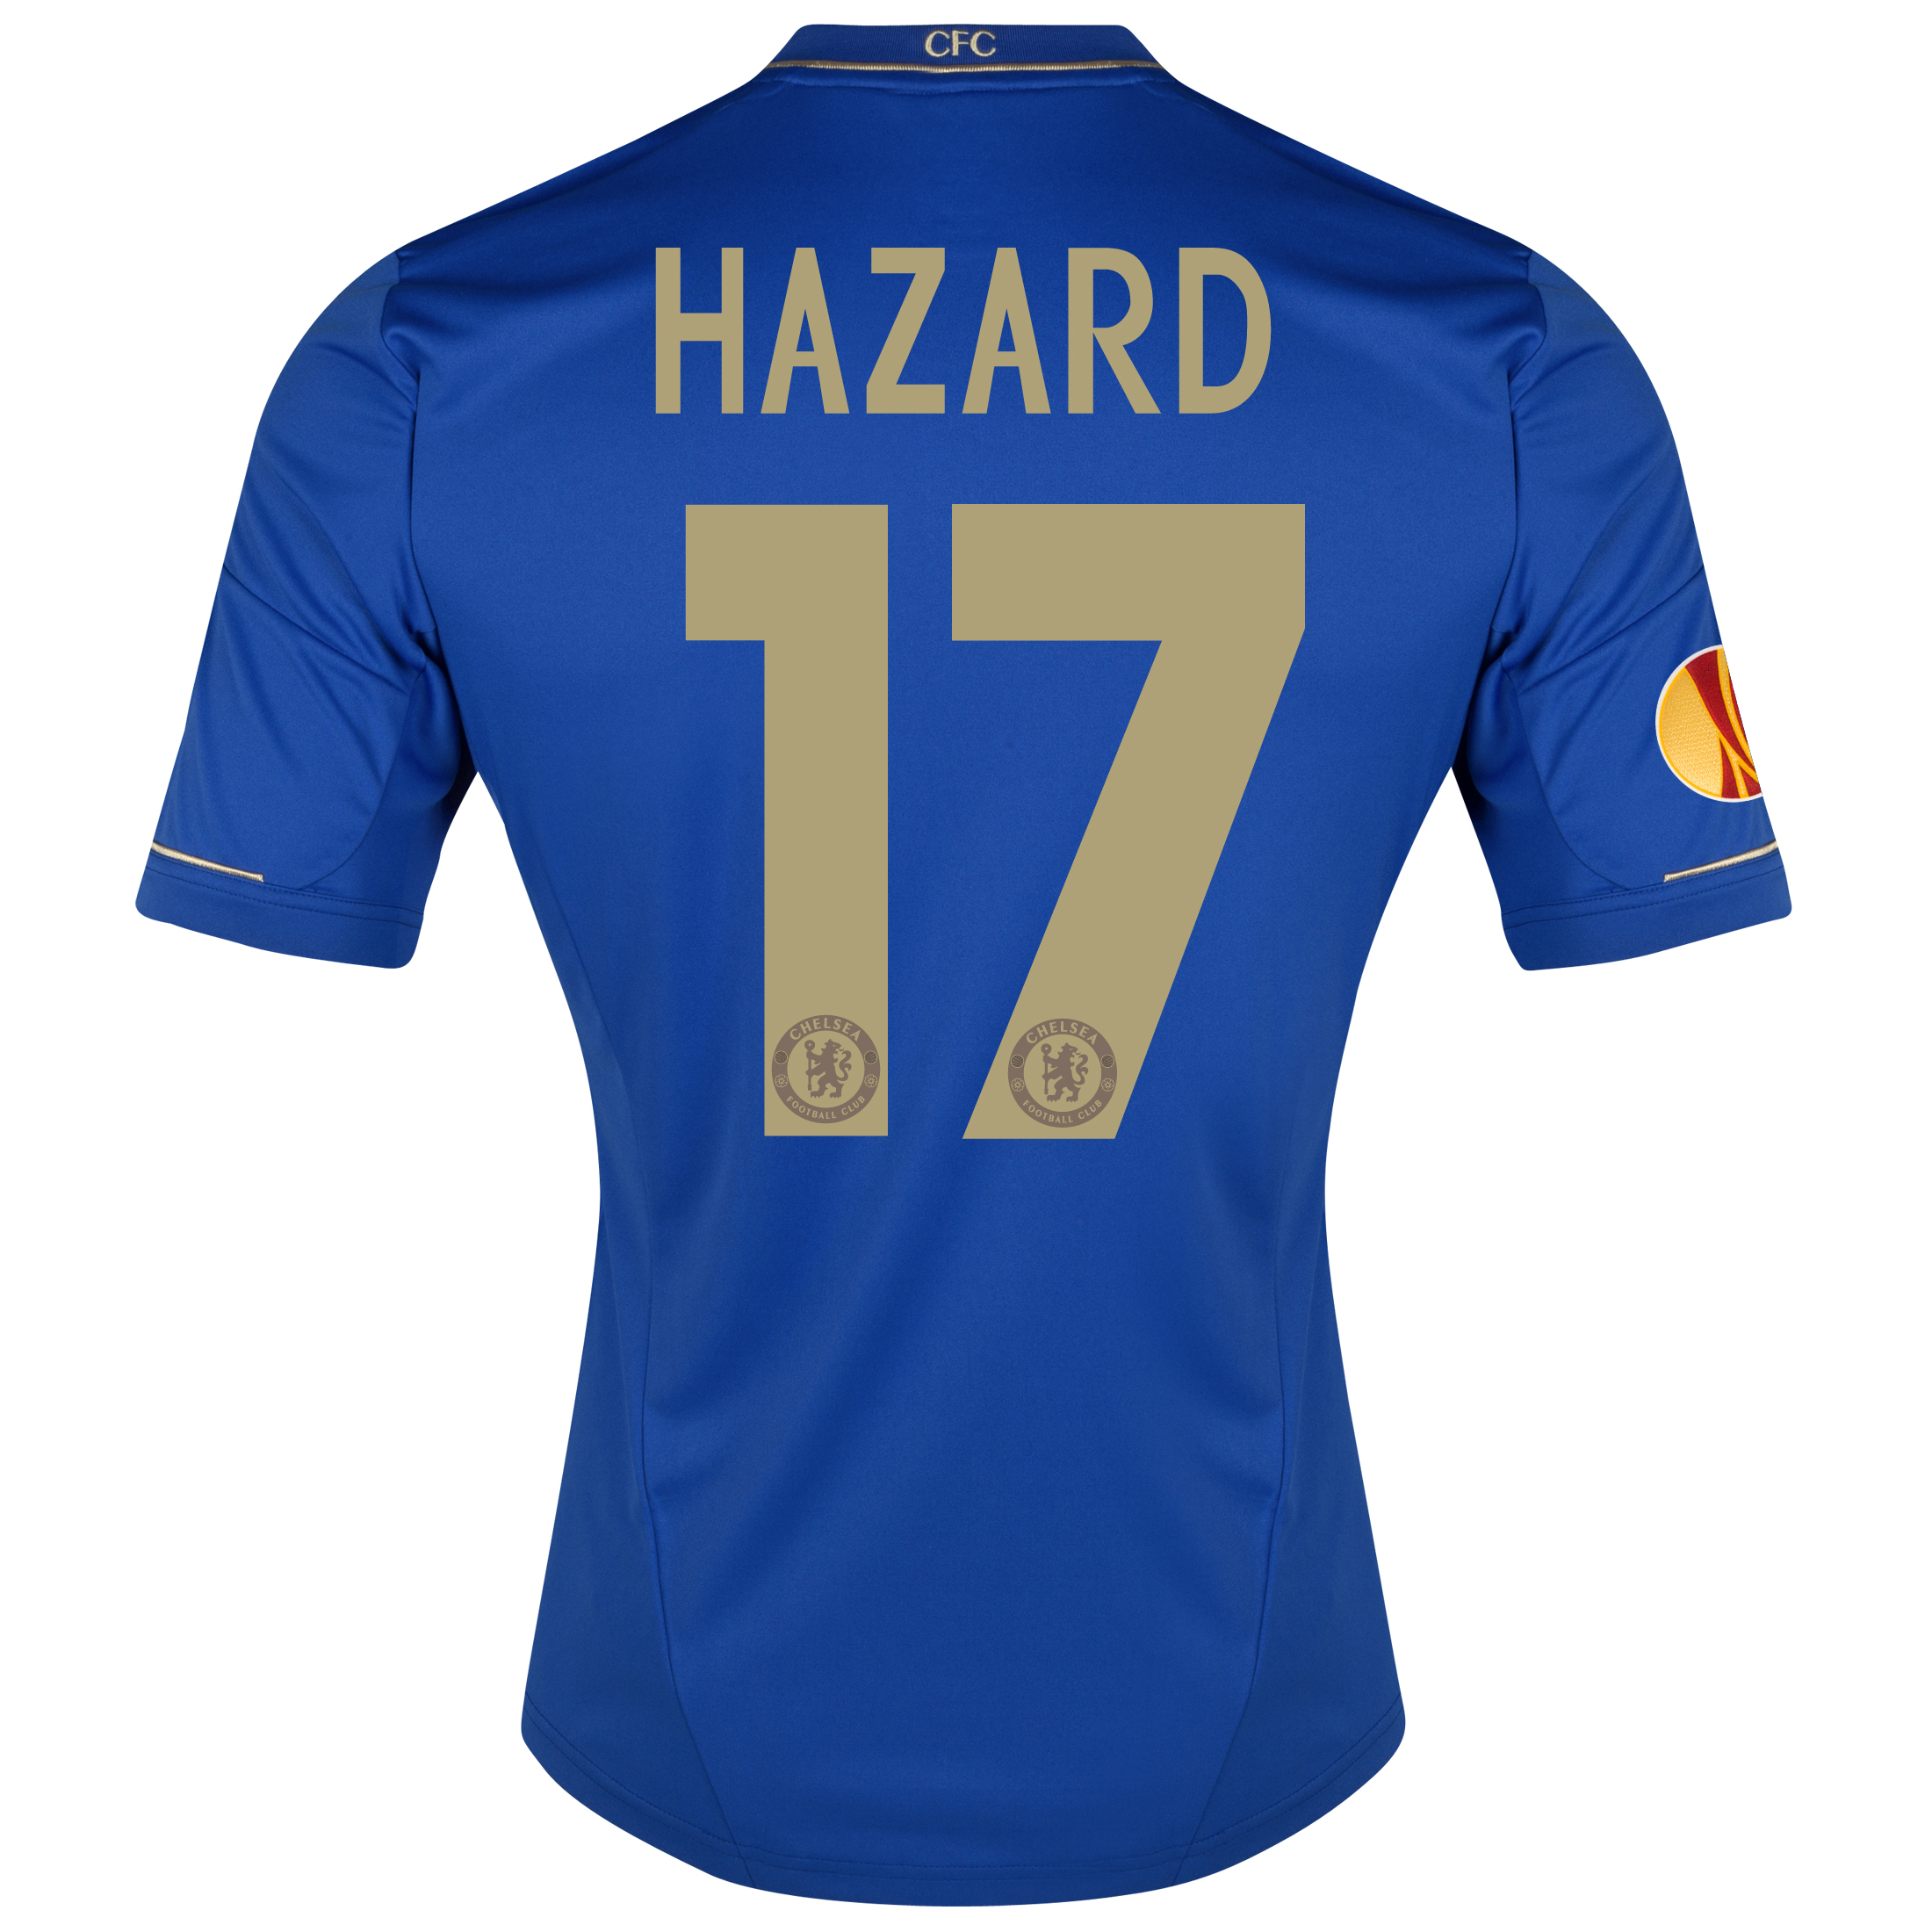 Chelsea UEFA Europa League Home Shirt 2012/13 - Outsize with Hazard 17 printing Including Europa Badge